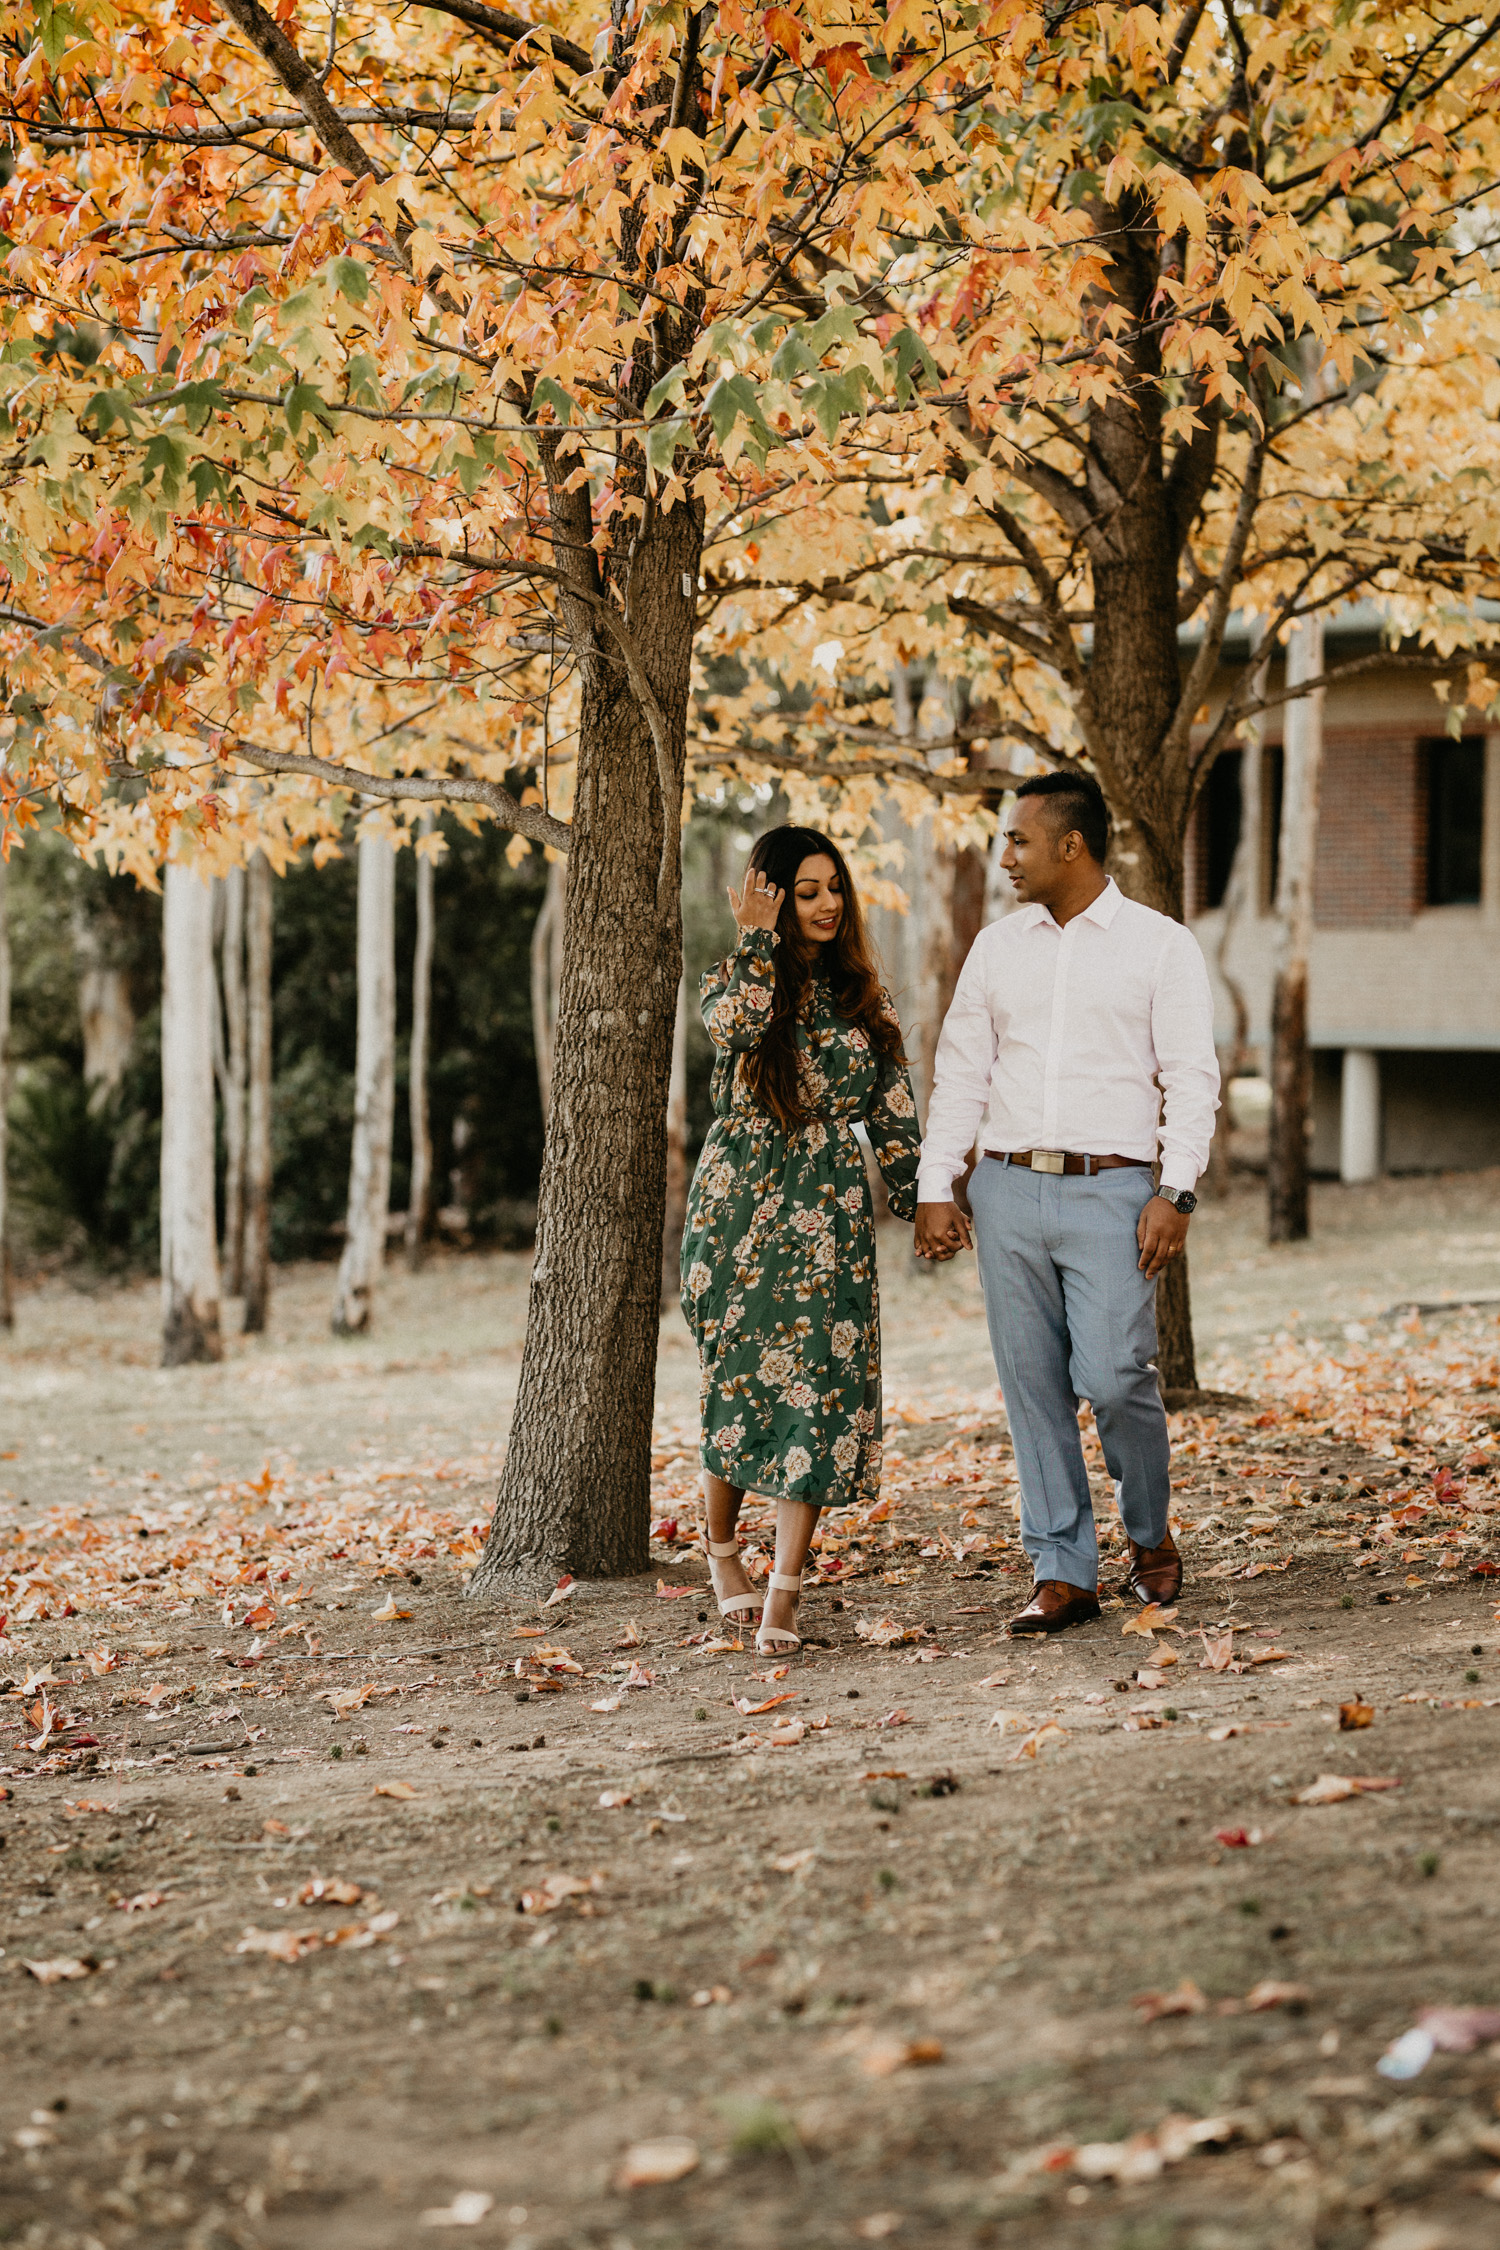 Meghna + Mark Engagement Akaness-18.jpg